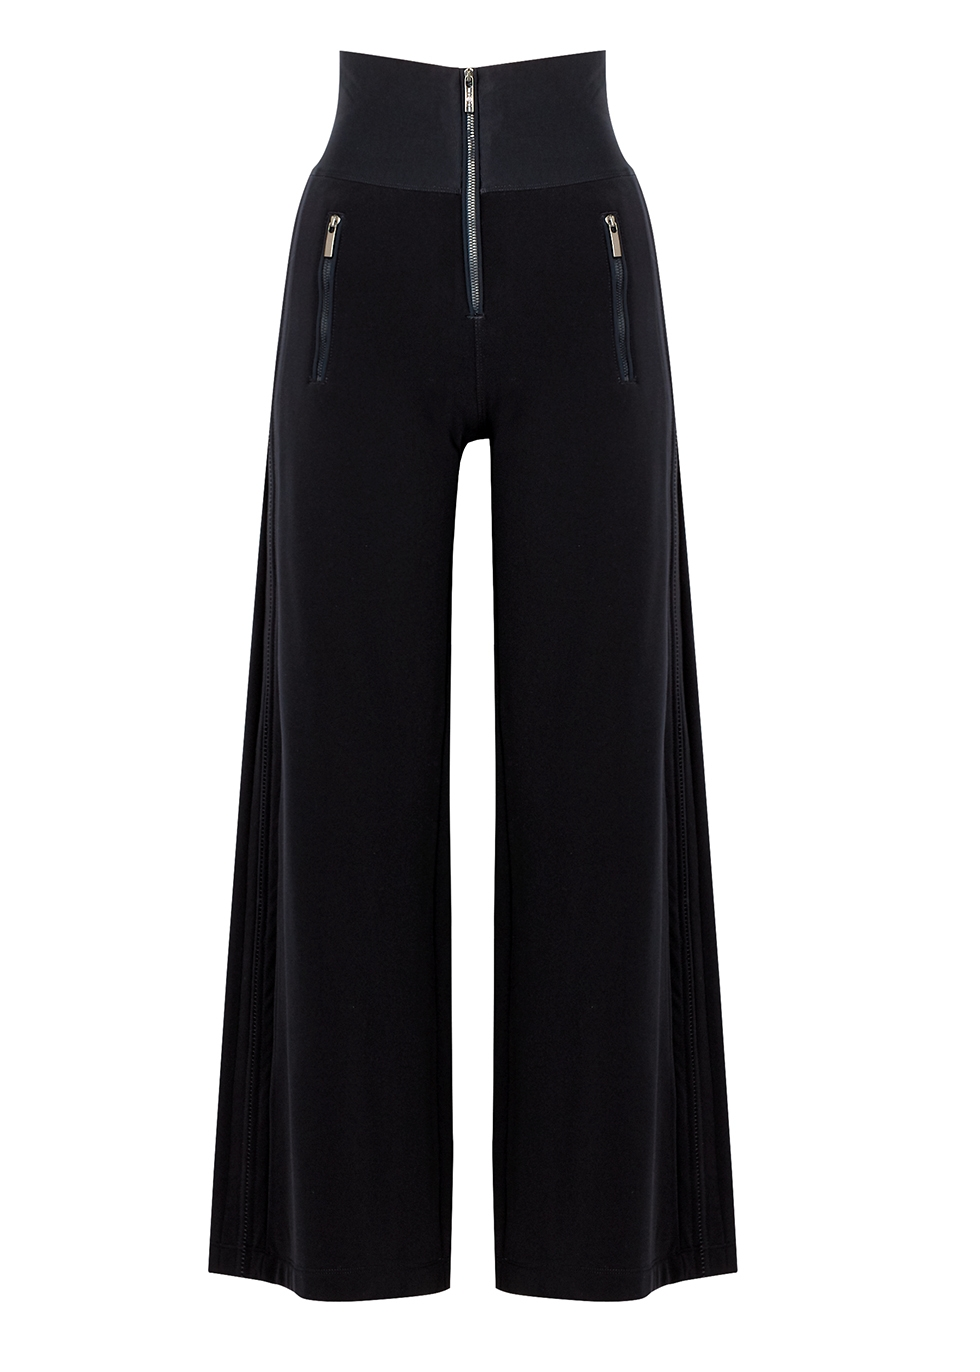 Equity navy wide-leg trousers